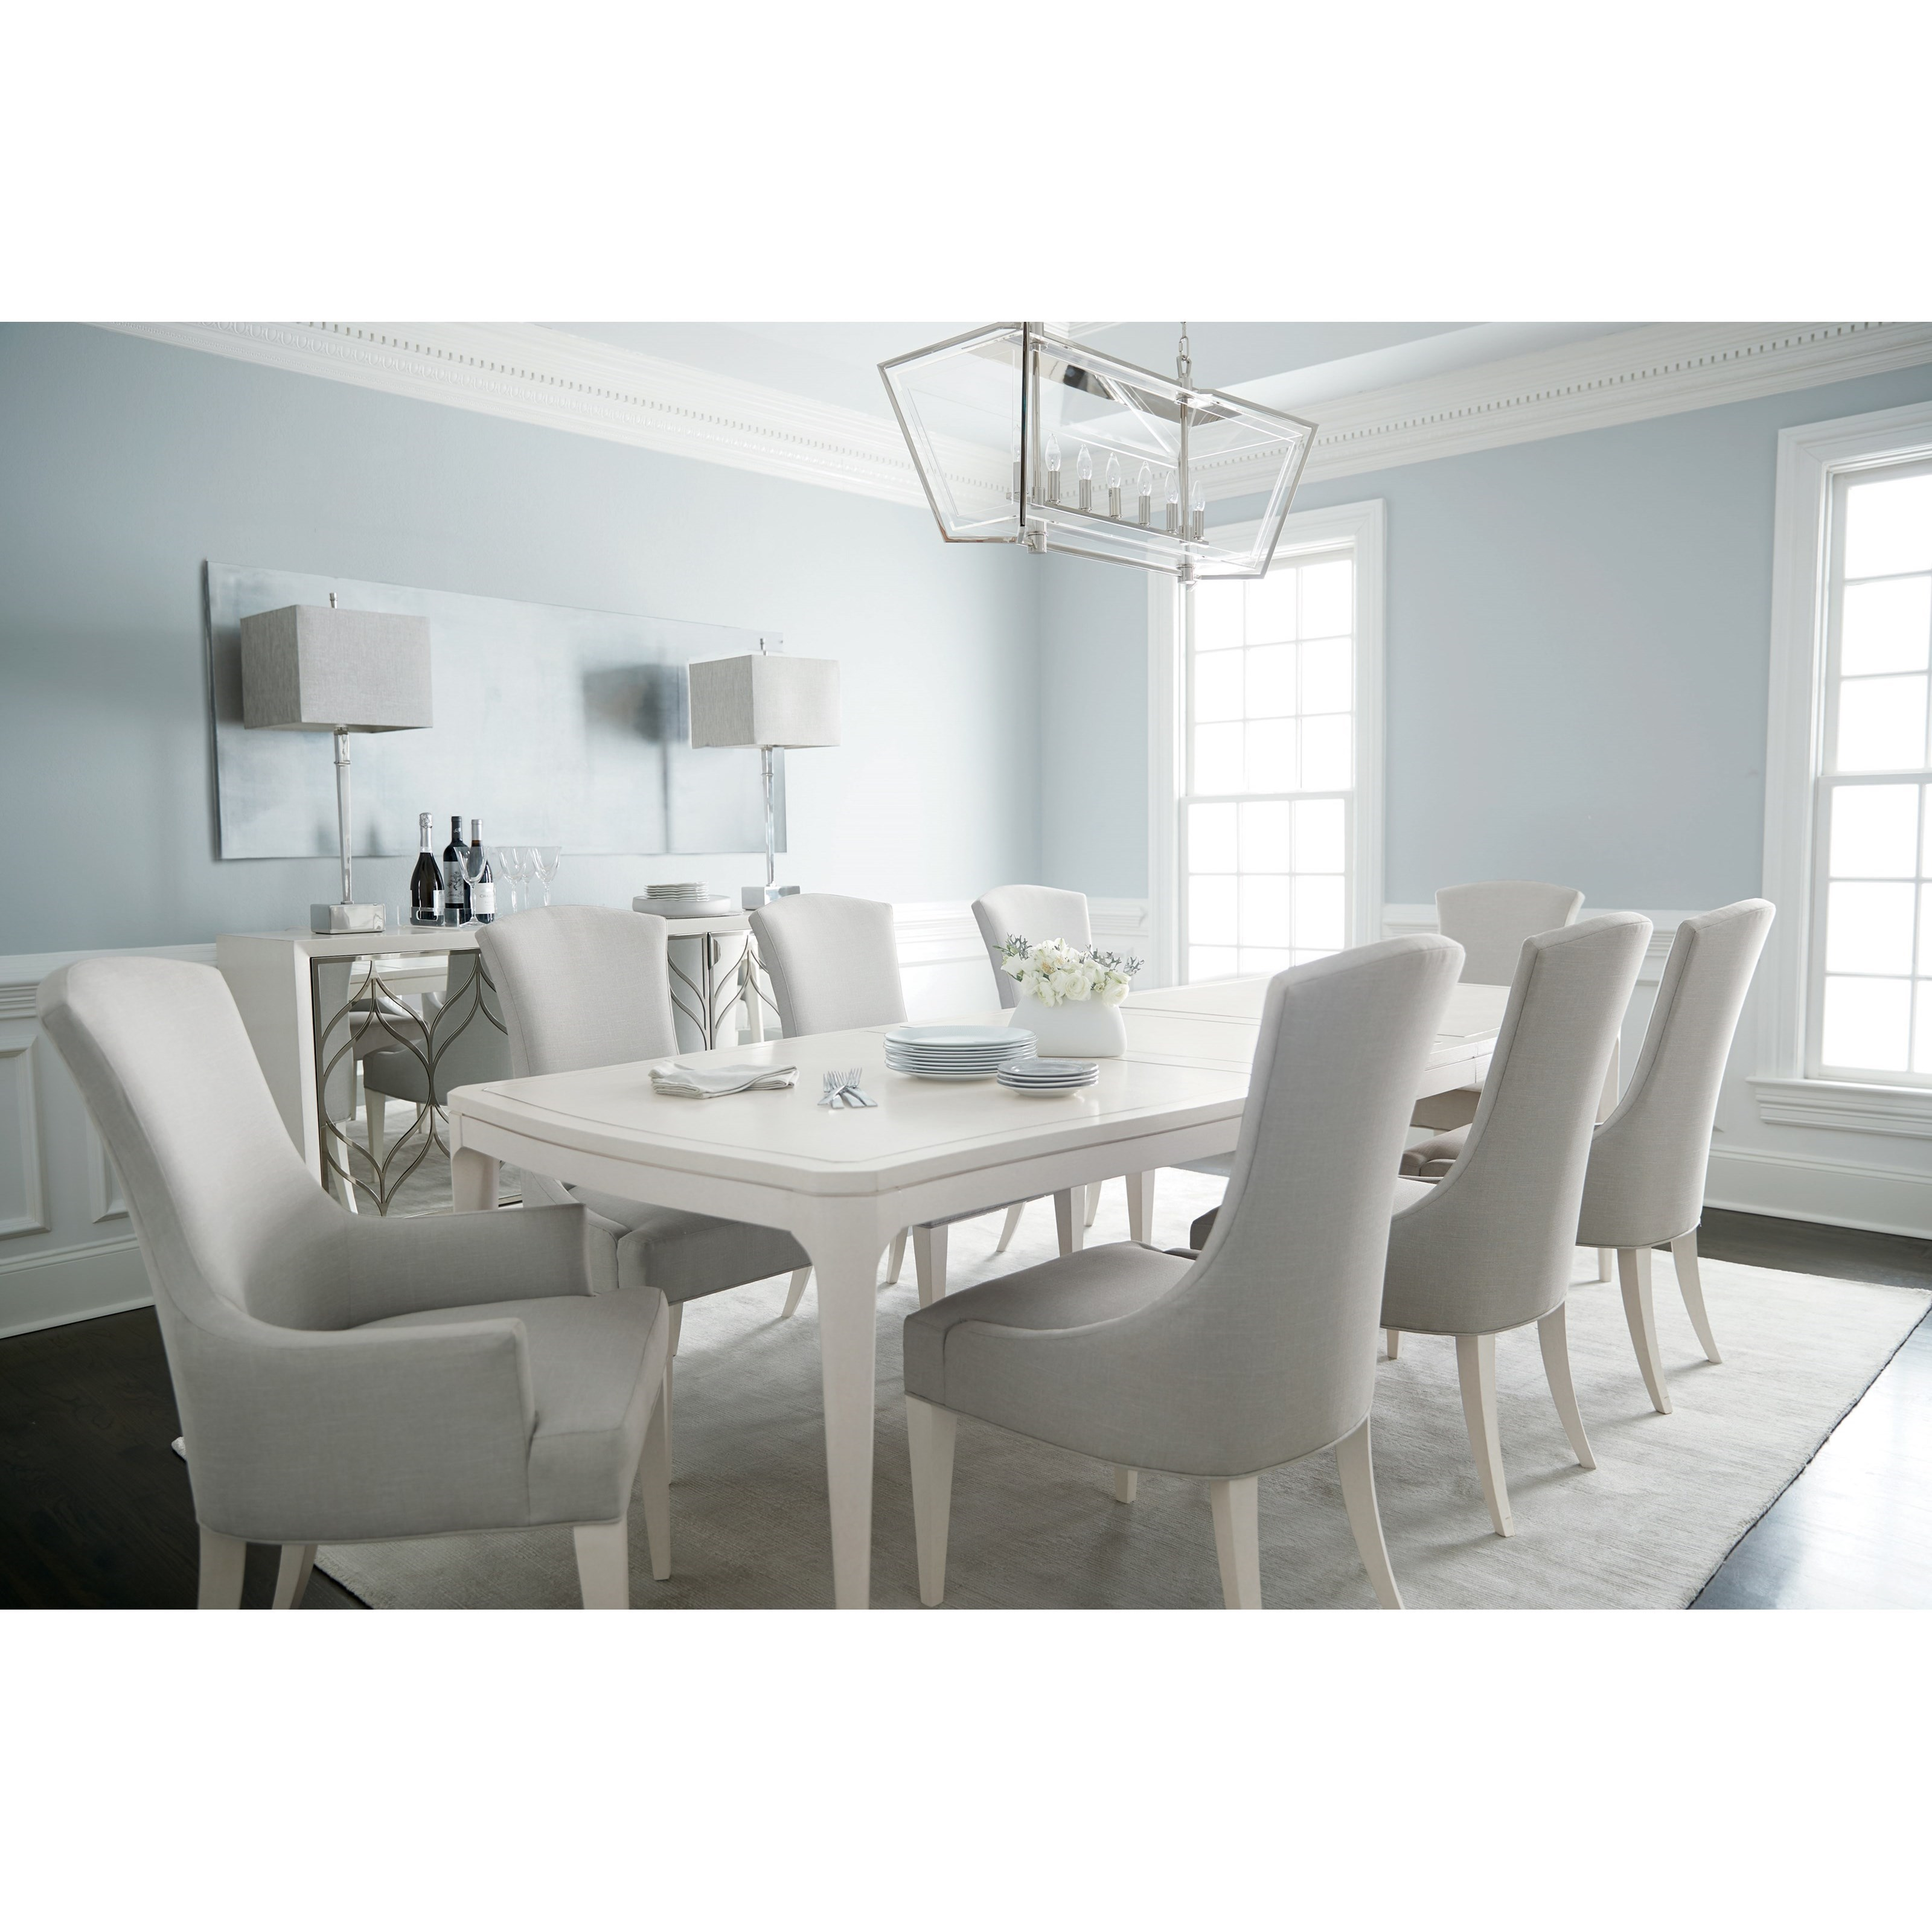 Transitional 9 Piece Table and Chair Set